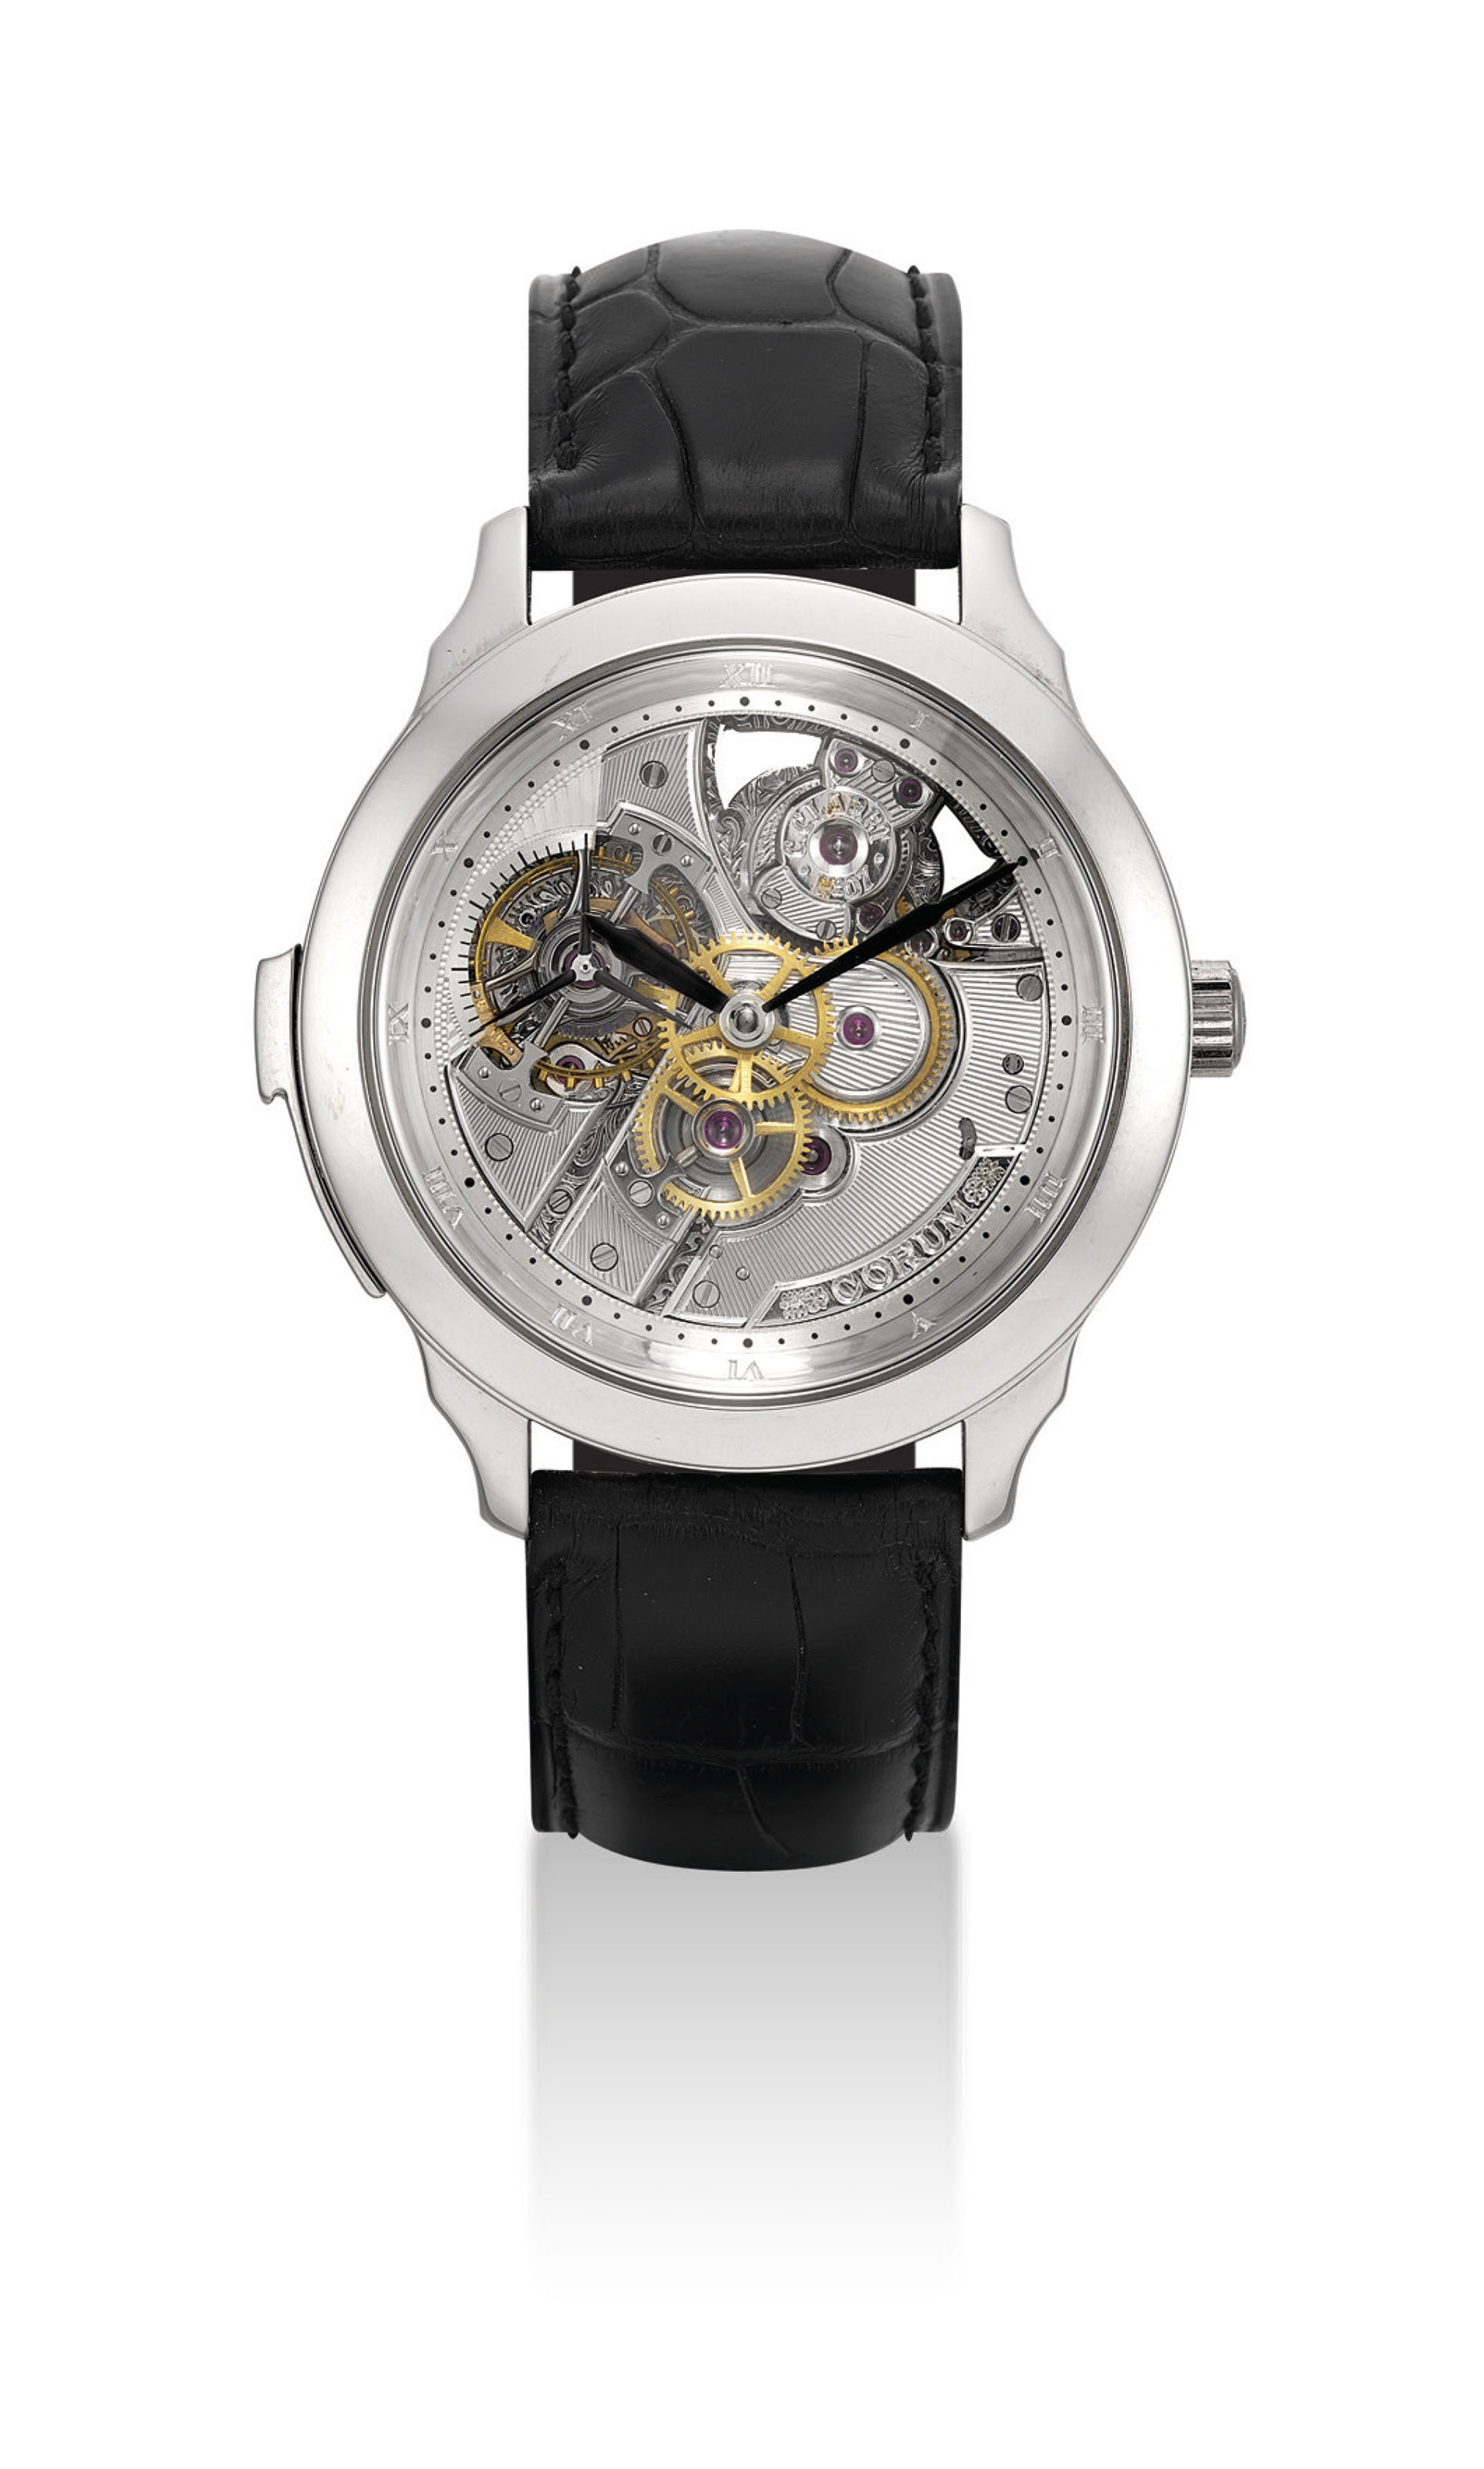 CORUM. A FINE AND EXTREMELY RA